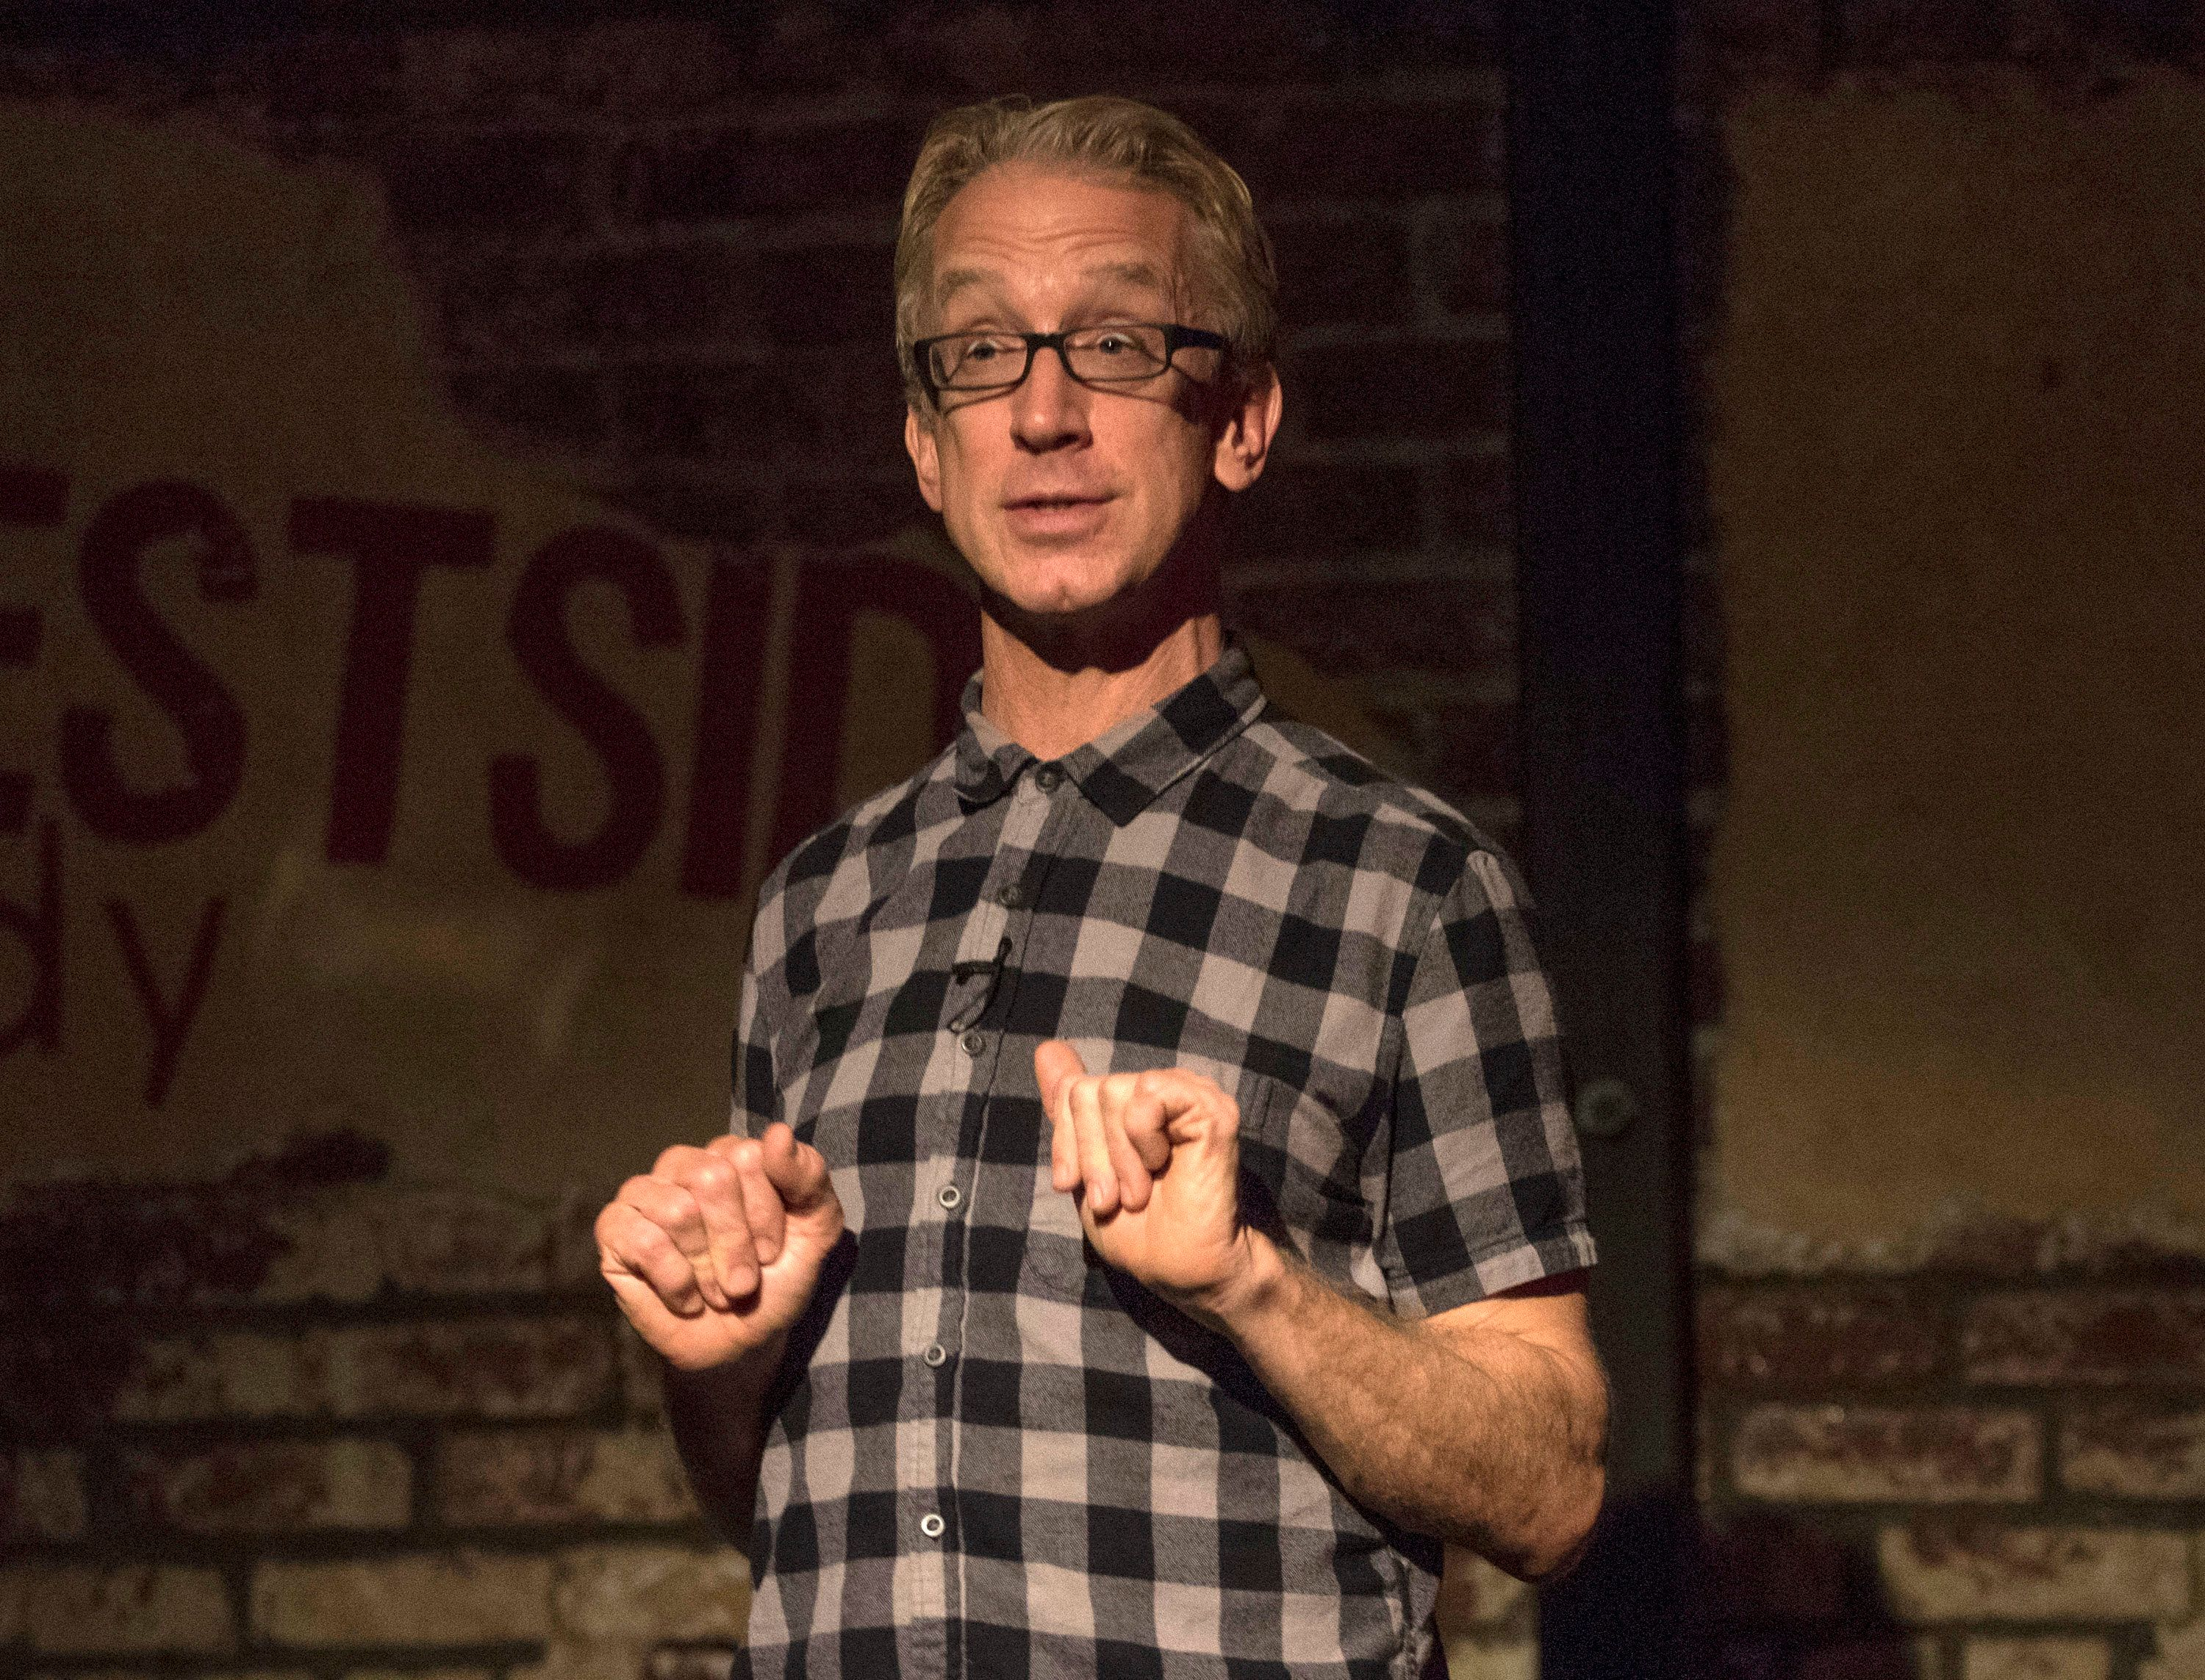 SANTA MONICA, CA - JANUARY 27:  Andy Dick performs at Fun With Dick on January 27, 2016 in Santa Monica, California.  (Photo by Michael Bezjian/WireImage)